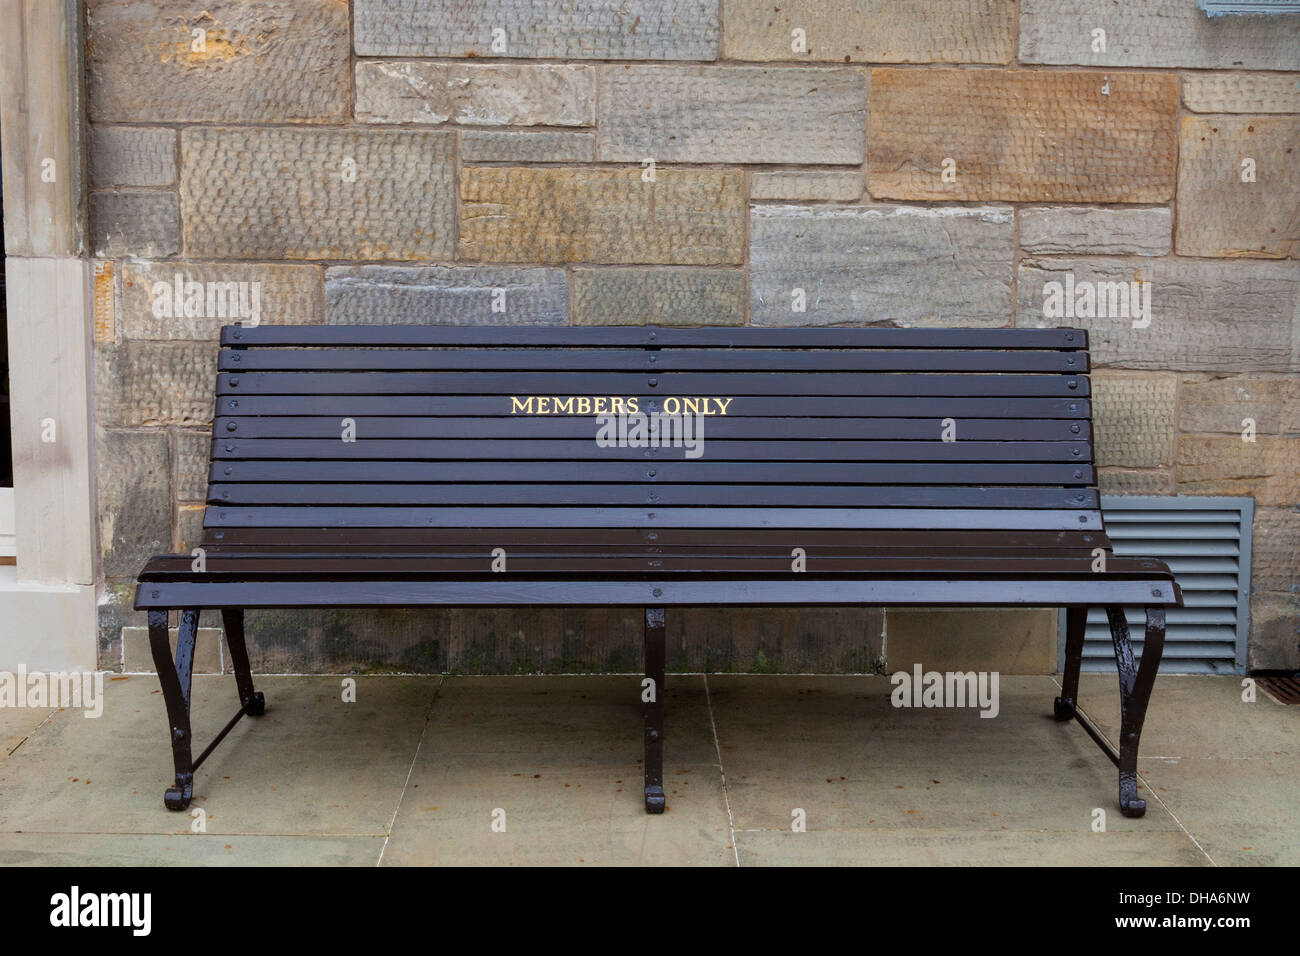 A Members Only bench at the Royal And Ancient Clubhouse, St Andrews, Scotland. - Stock Image